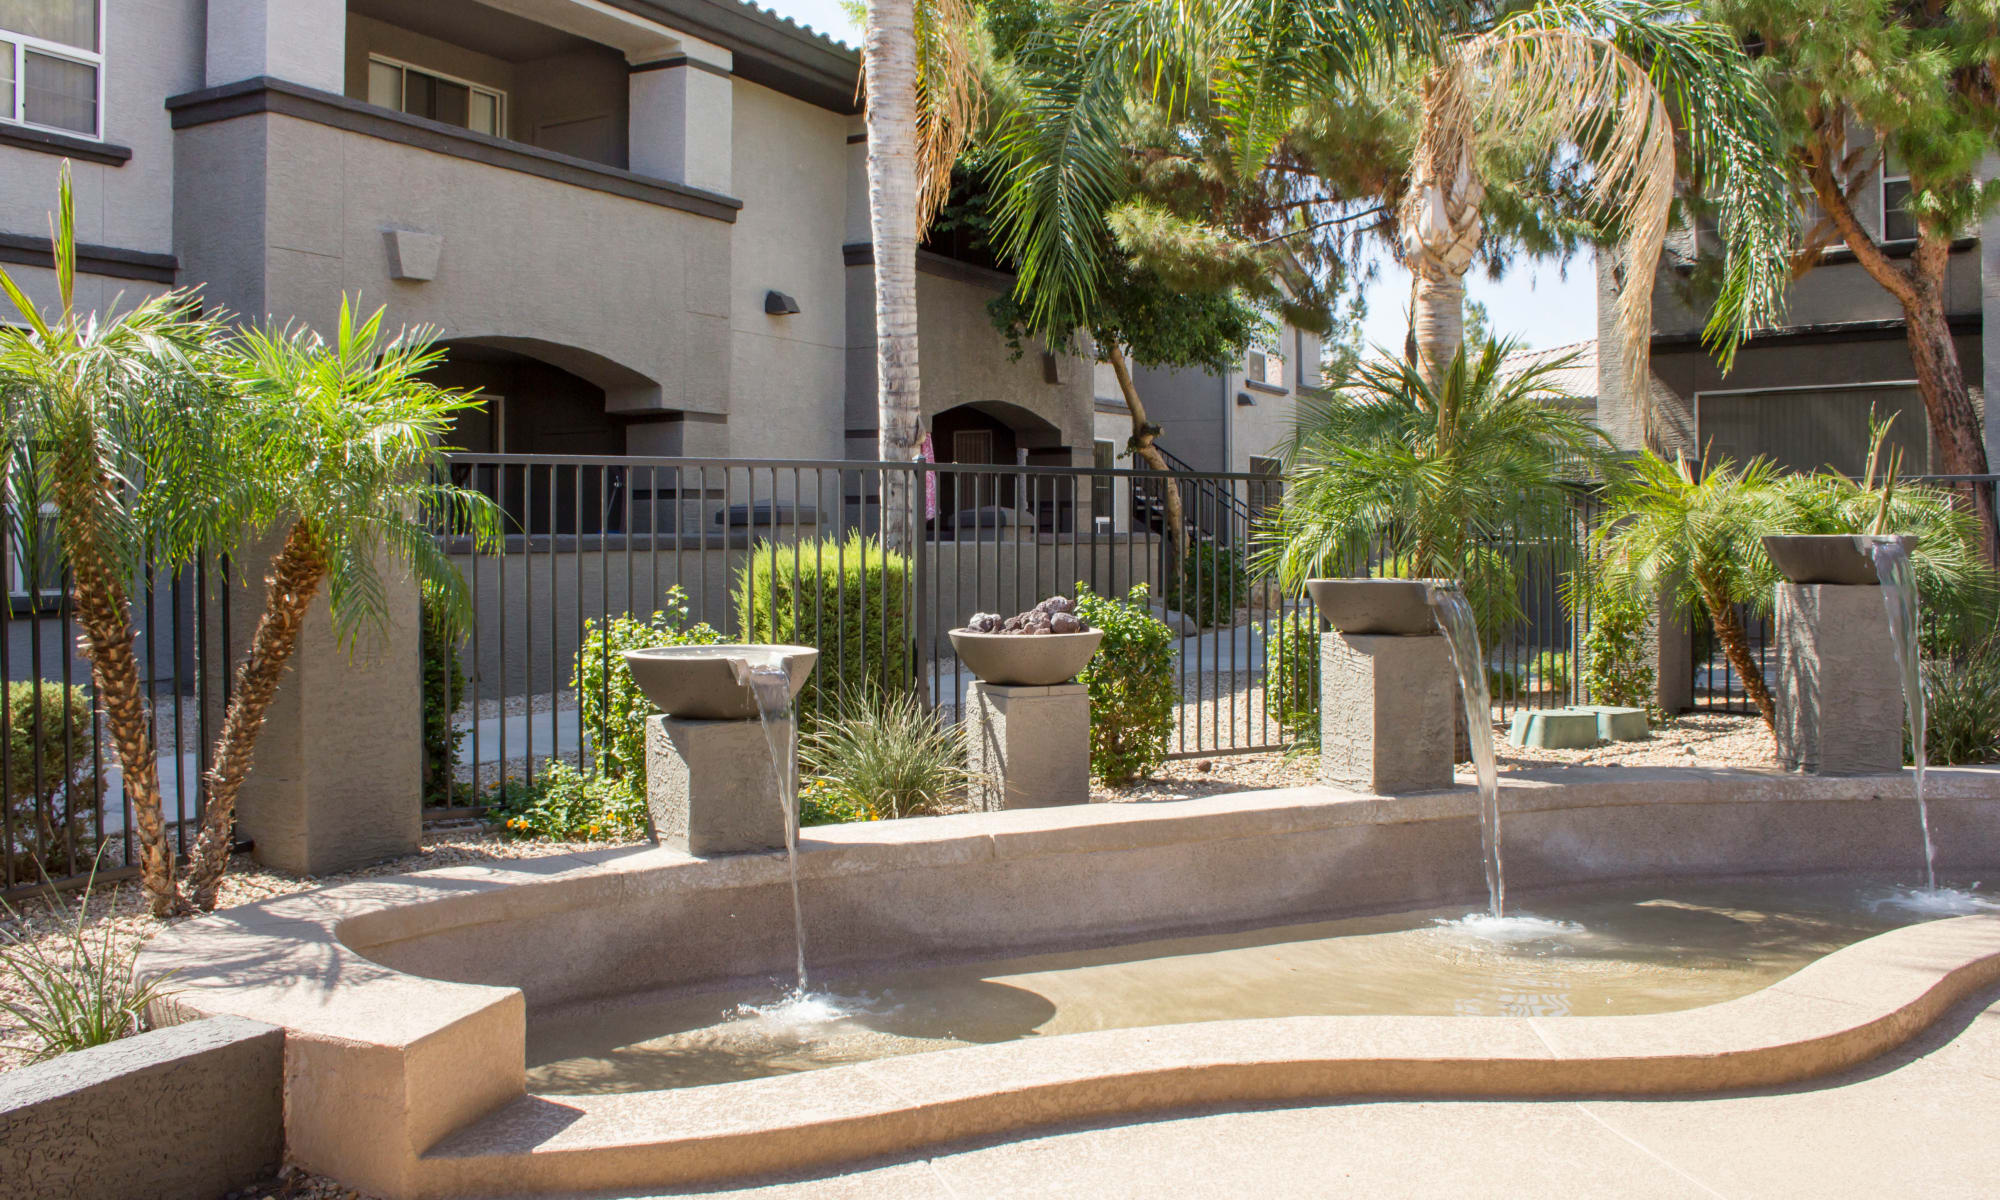 Apartments at Sierra Canyon in Glendale, Arizona